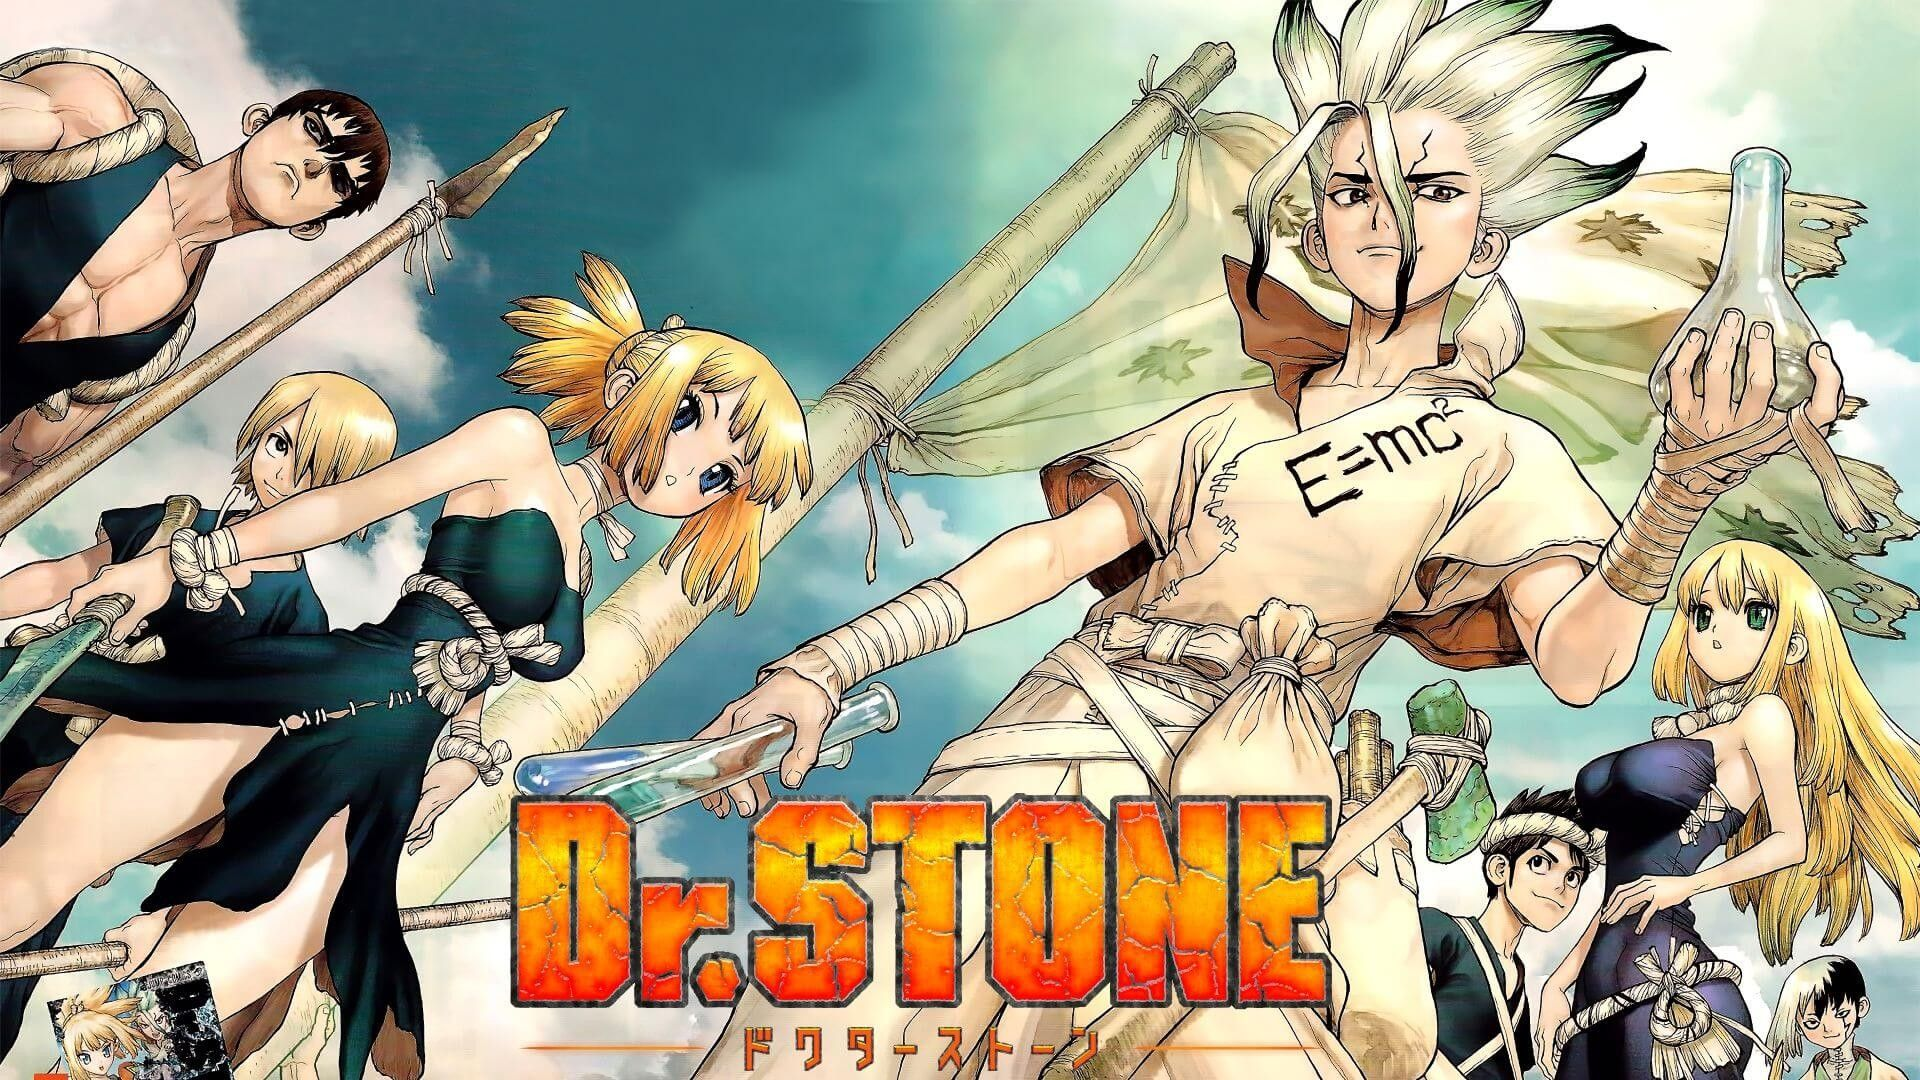 Dr Stone in Hindi in 2020 All episodes, Episodes, Anime